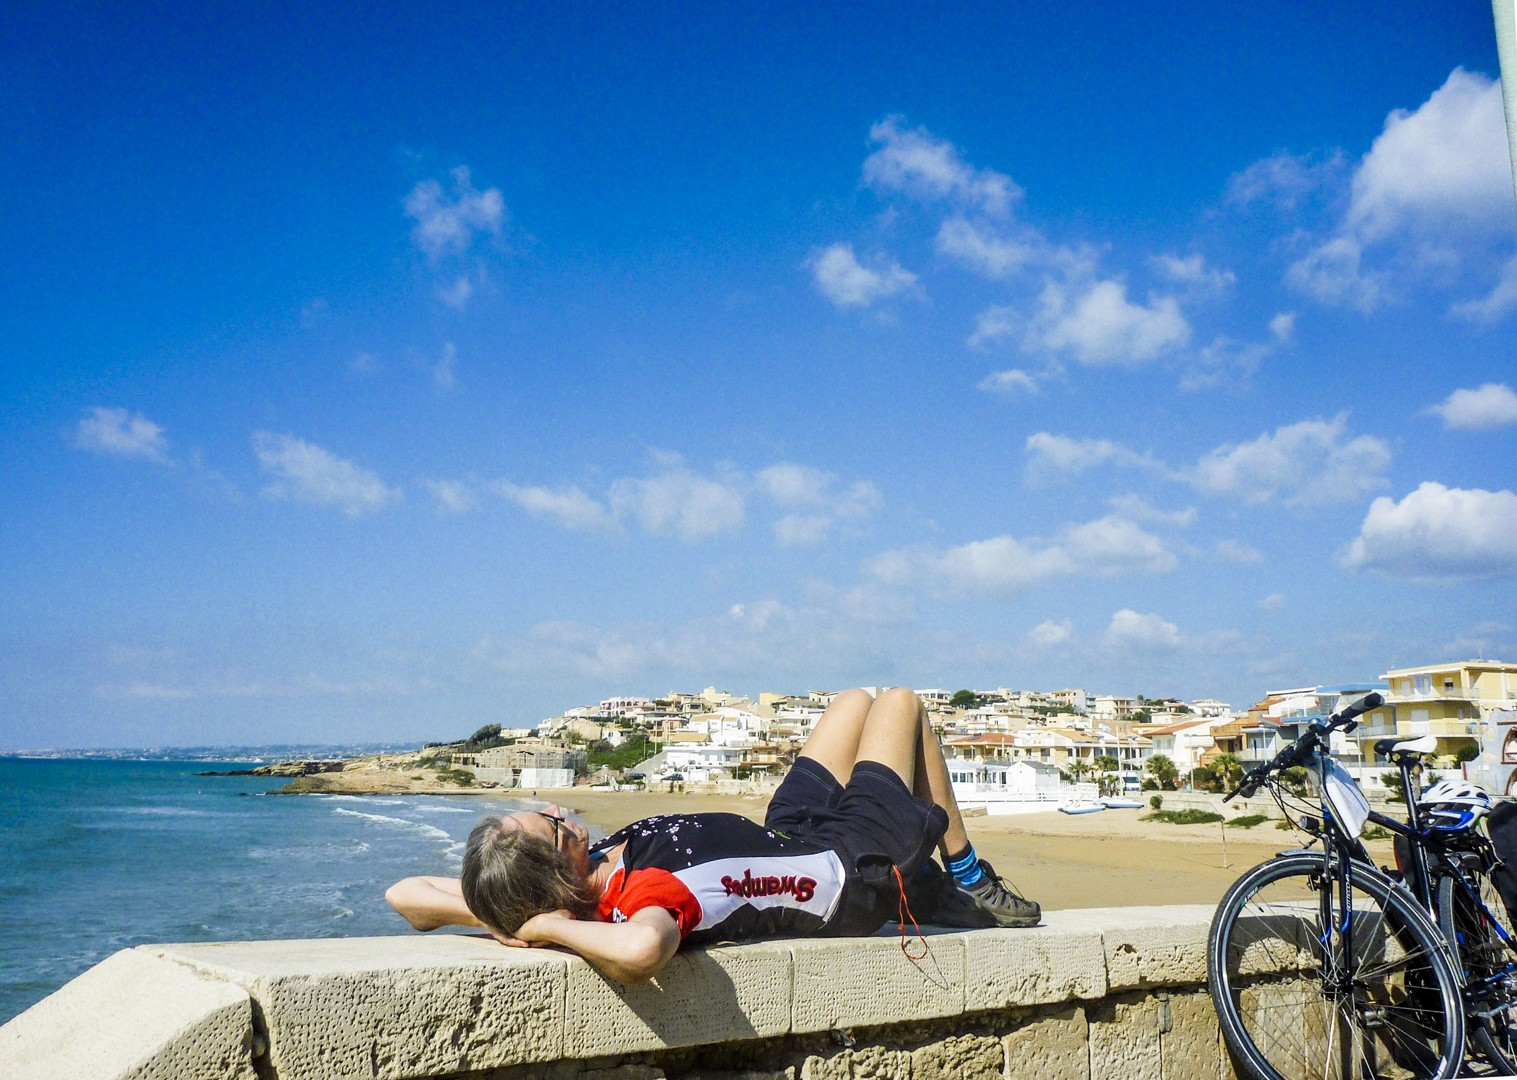 relaxing-leisure-cycling-italy-sicily-coast-saddle-skedaddle.jpg - Italy - Sicily - Self-Guided Leisure Cycling Holiday - Leisure Cycling